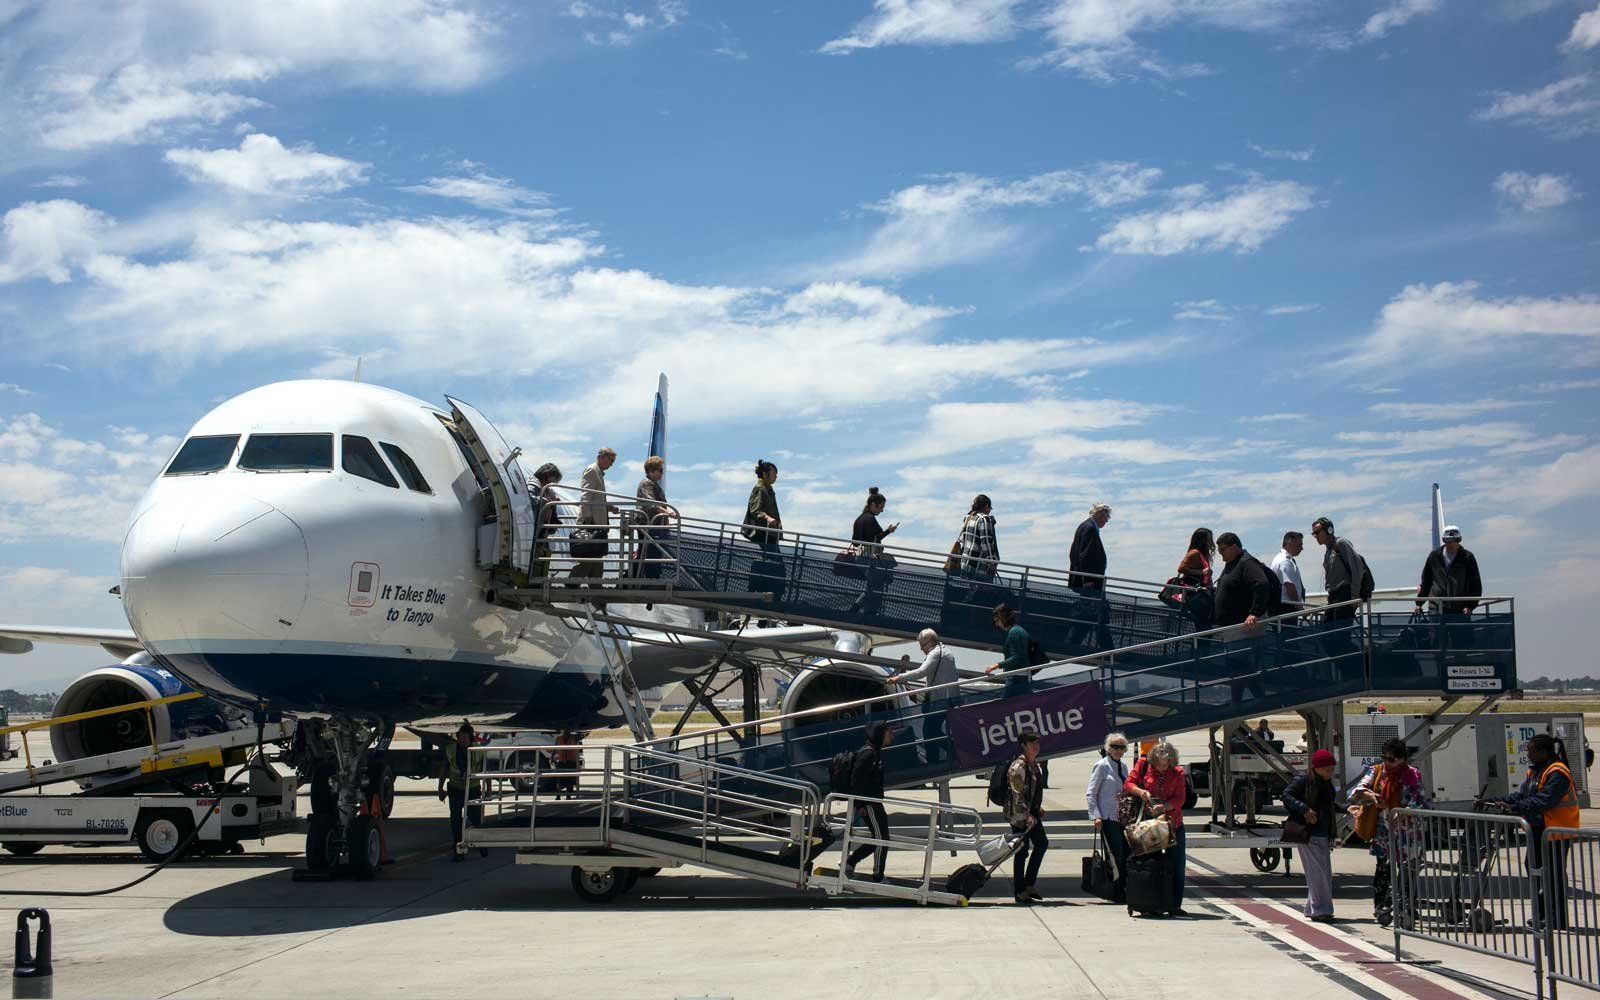 Save Money By Searching For Flights From Smaller Airports